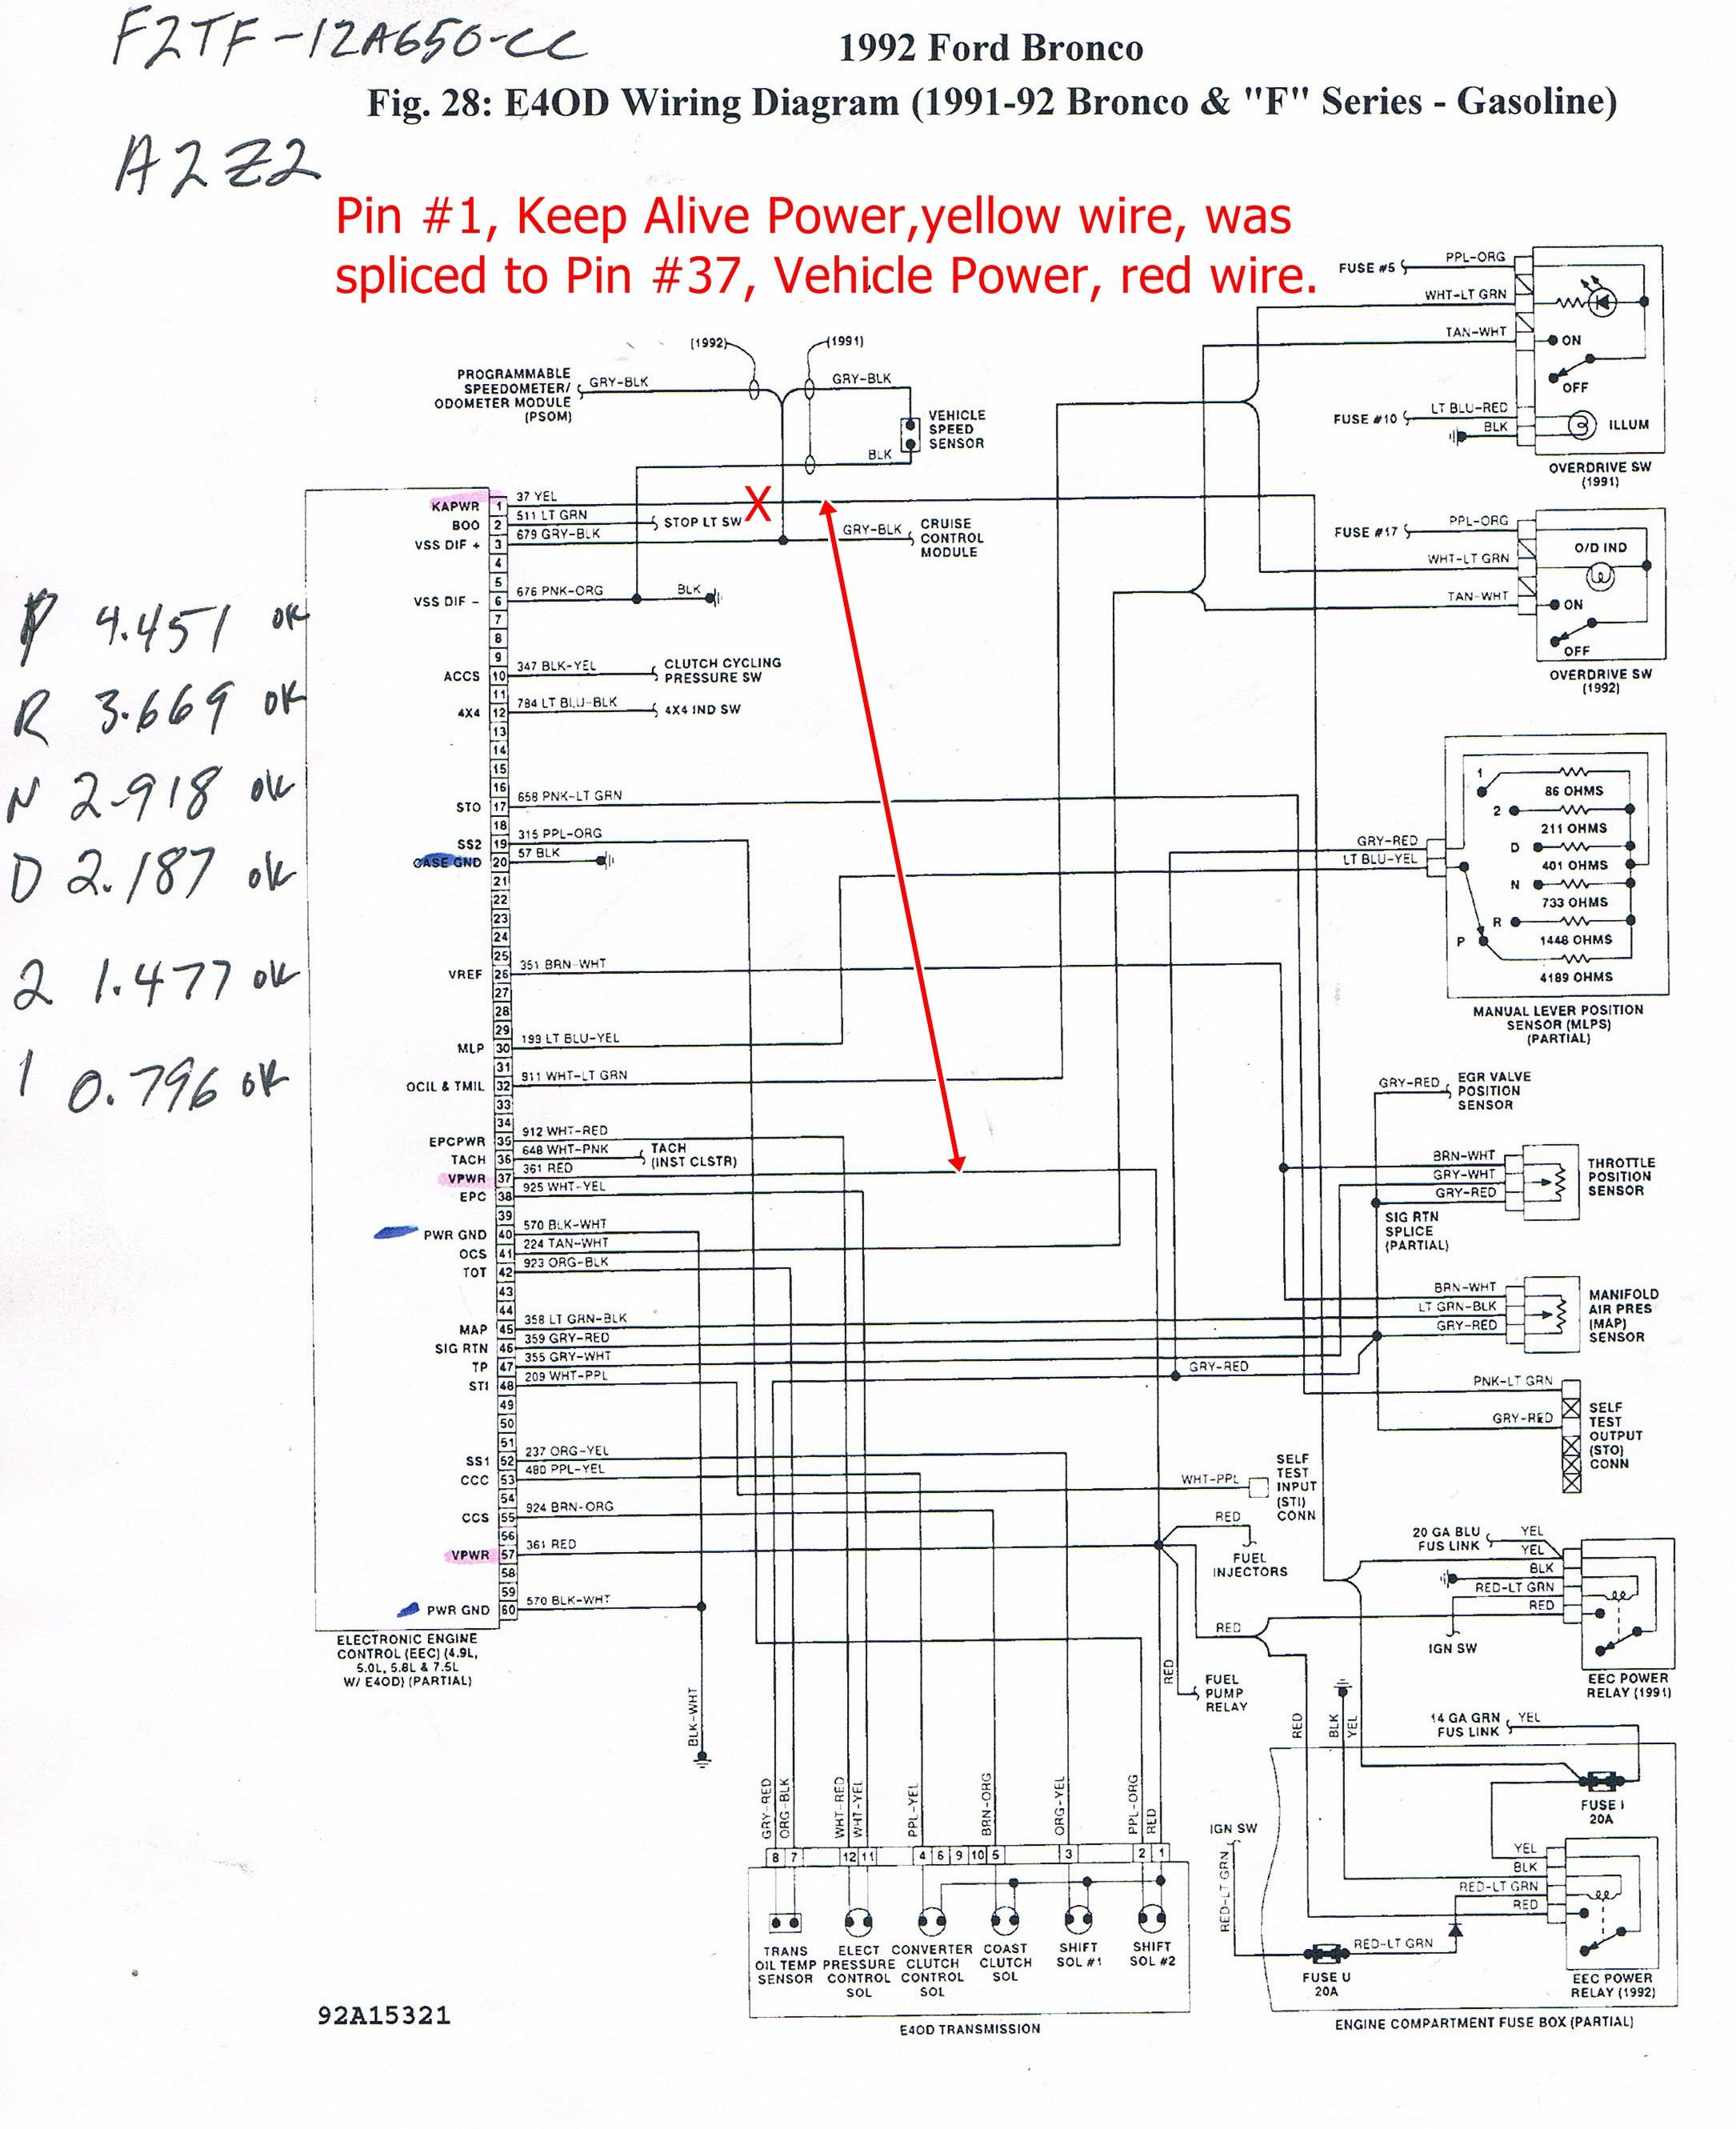 New Of 4l60e Transmission Shift Solenoid Wiring Diagram What Turns Throughout 4l60e Chevy Transmission Transmission Transmission Repair